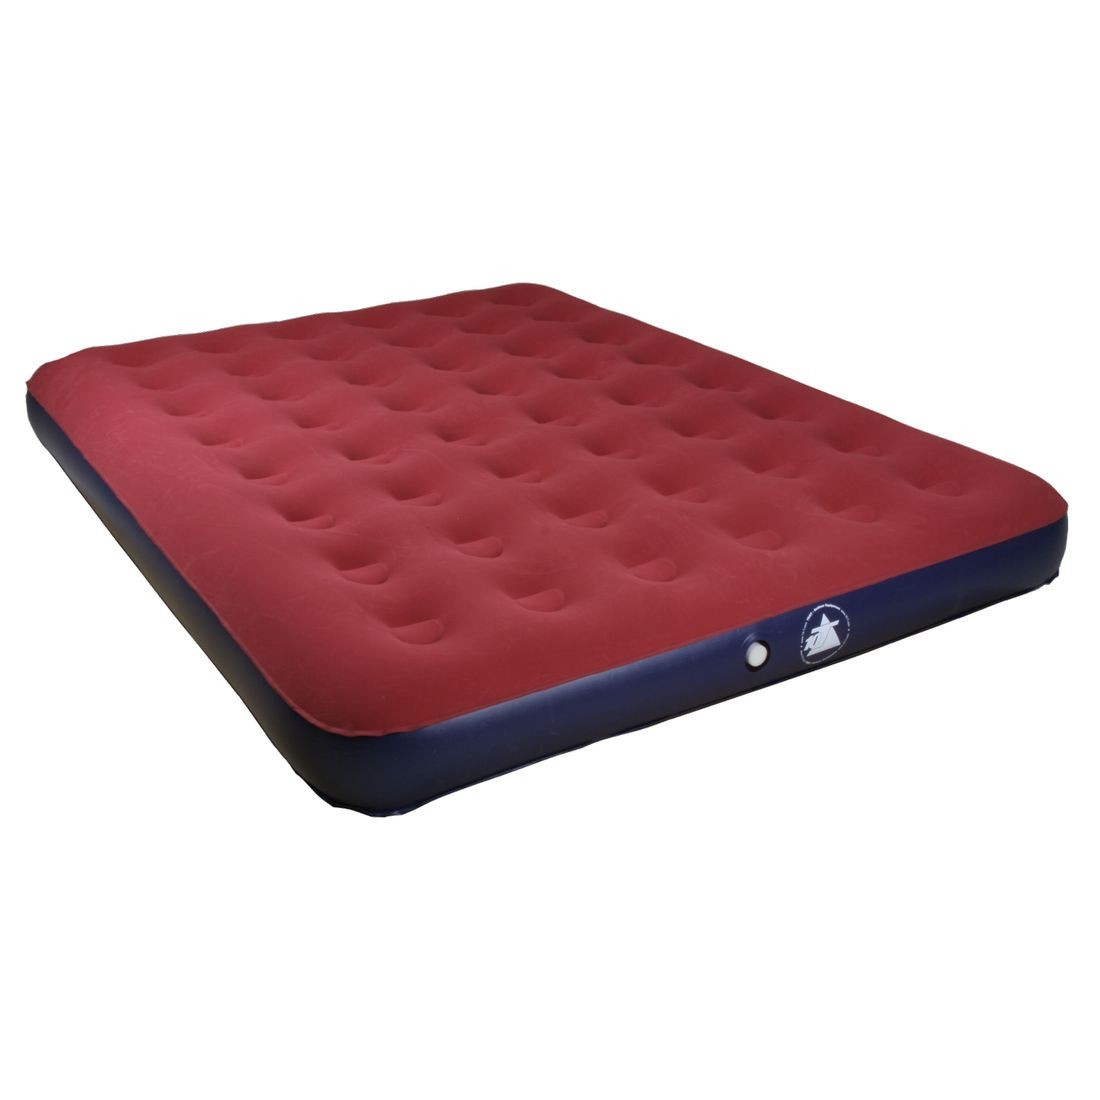 10t velo king maxi double air bed air mattress suede reclining area comfort ebay. Black Bedroom Furniture Sets. Home Design Ideas